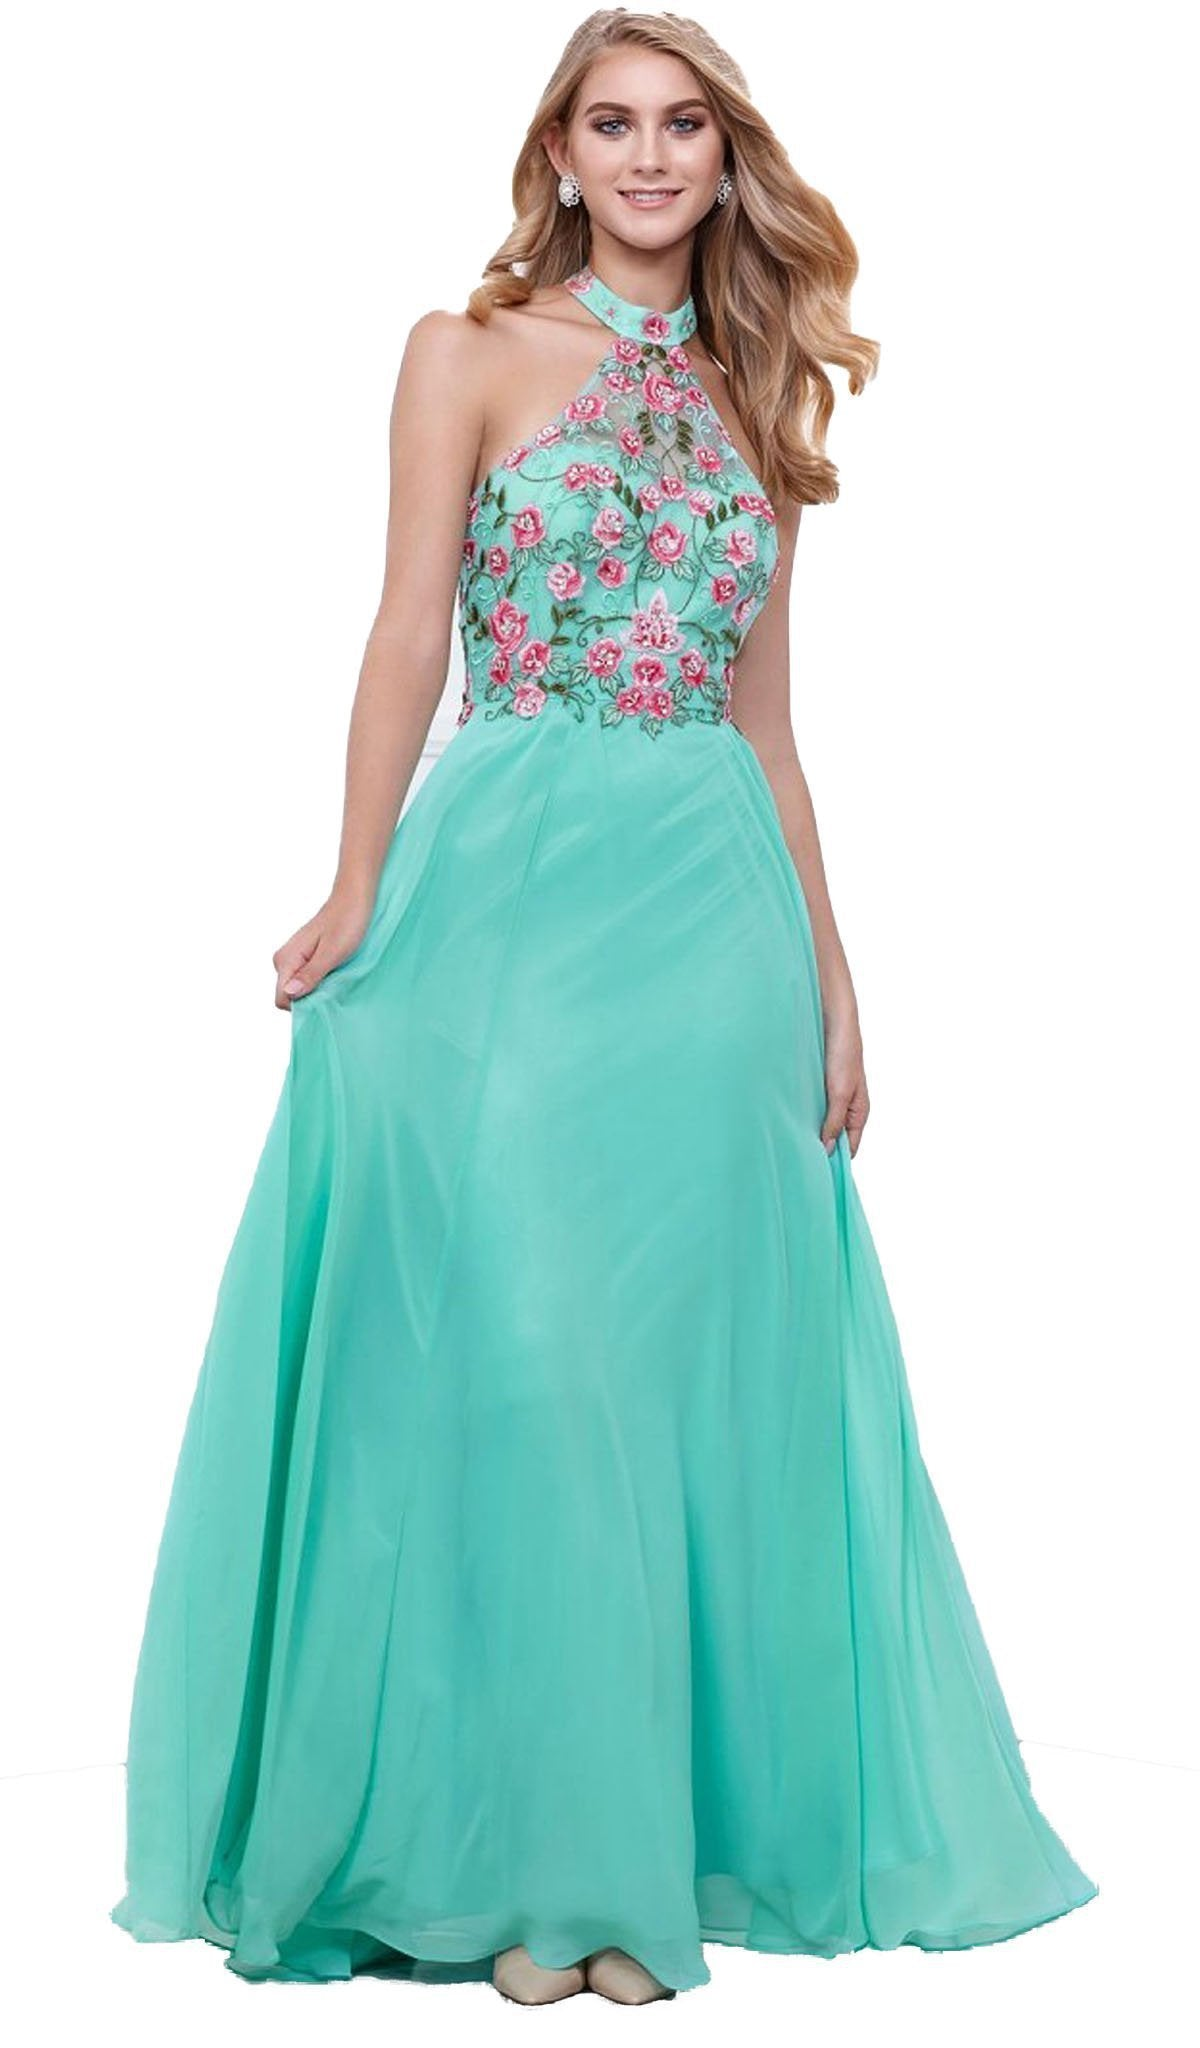 Nox Anabel - Floral Halter Style Long Evening Gown 8326SC